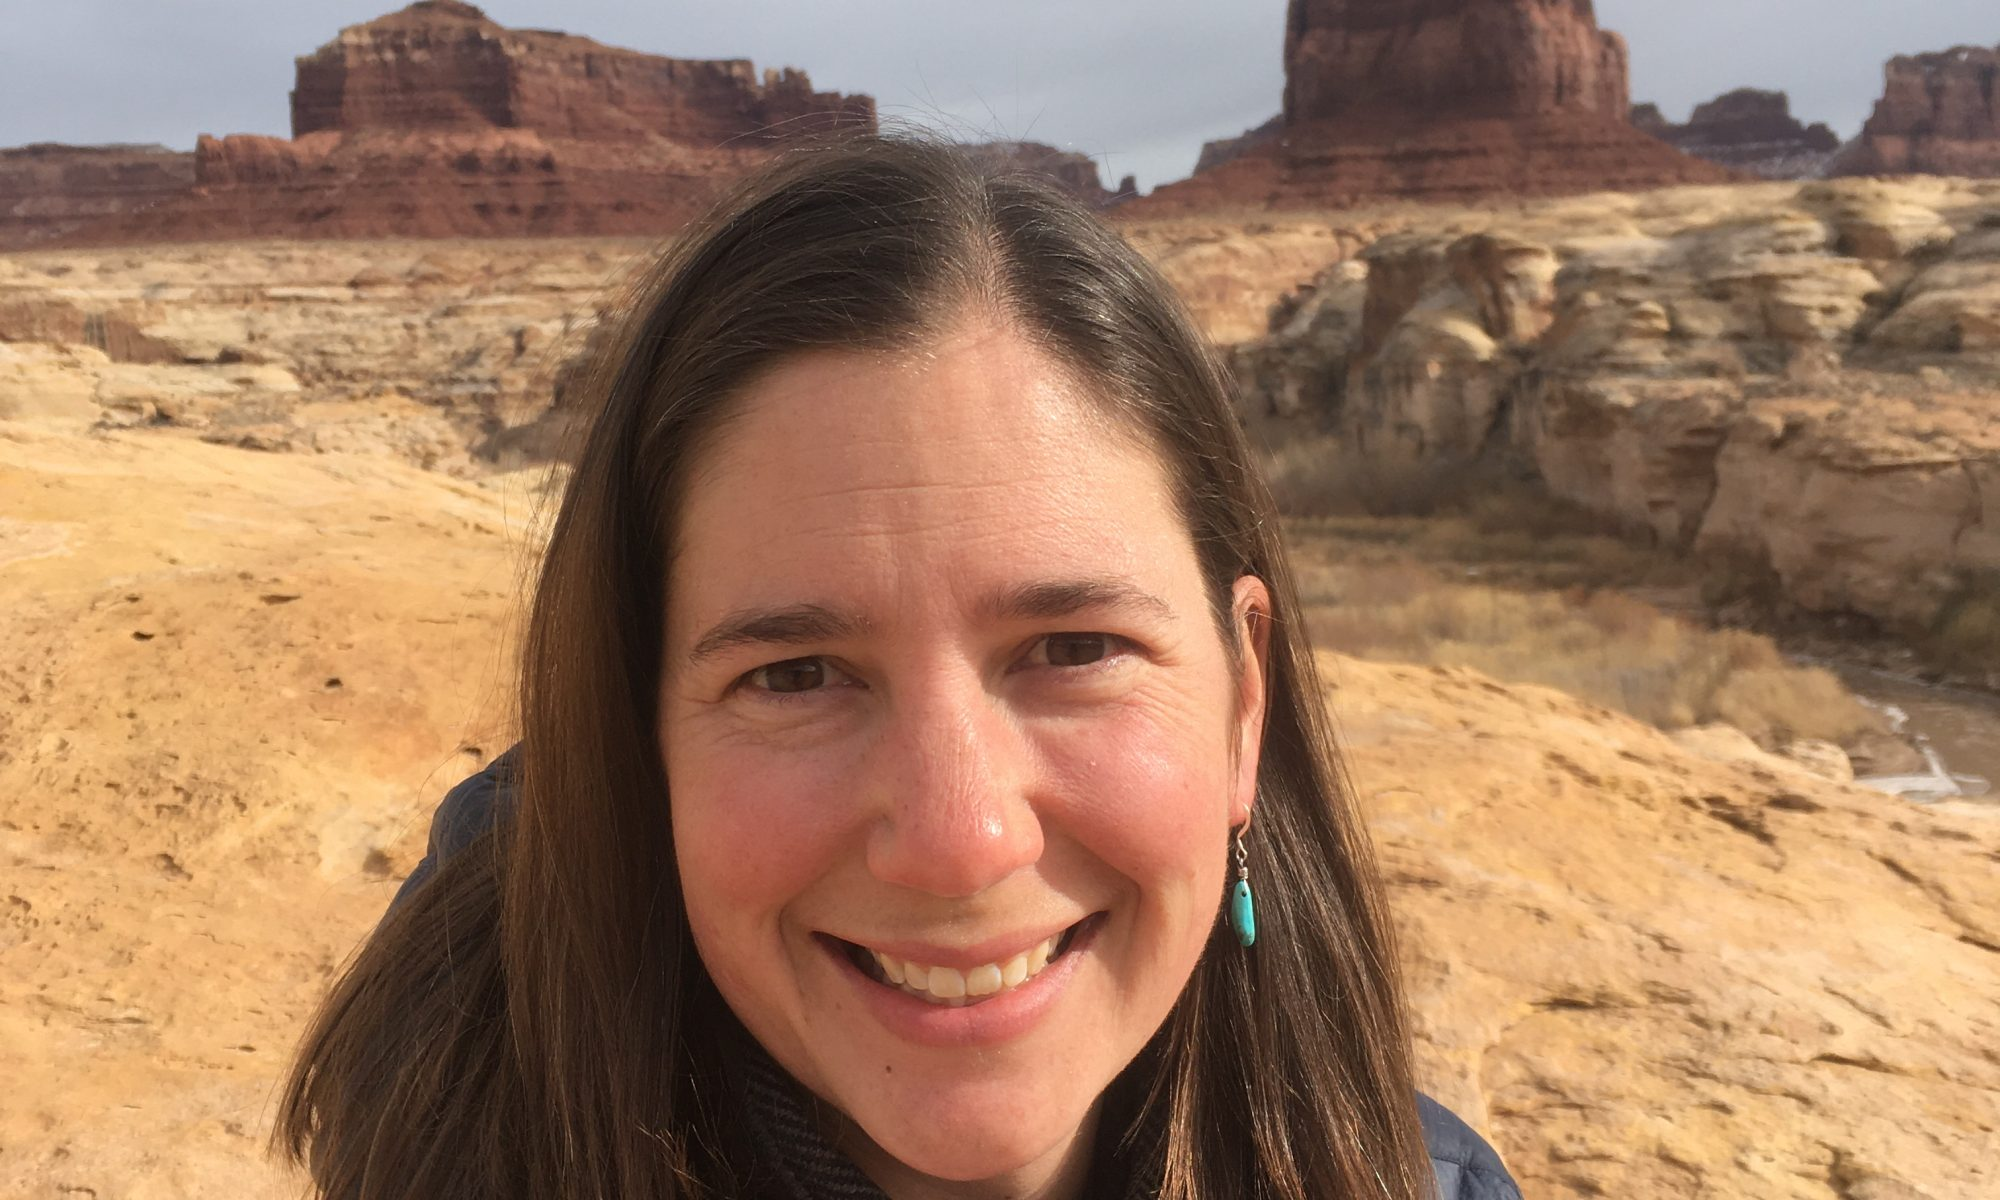 Female graduate student in front of monuments in Monument Valley